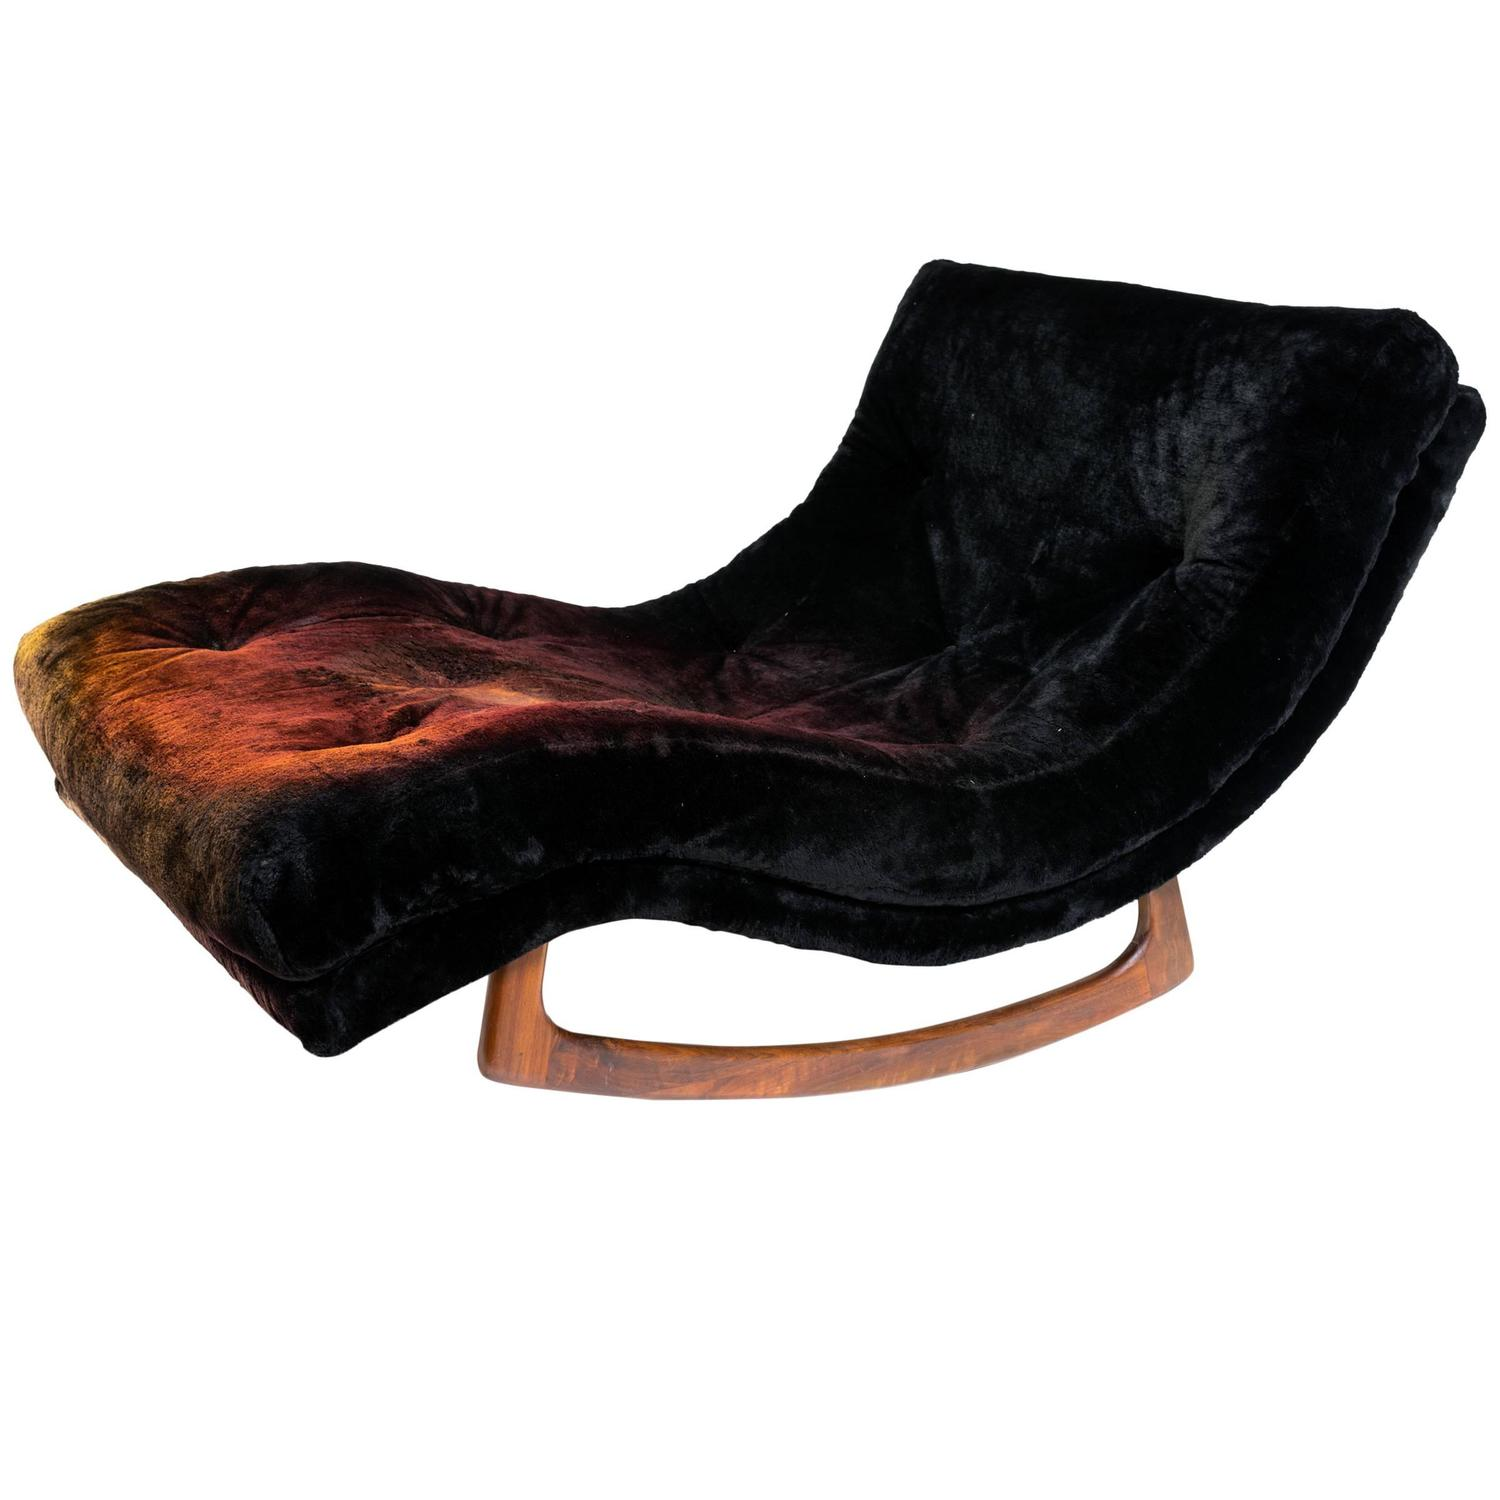 adrian pearsall rocking chair office caster wheels wave chaise rocker for craft at 1stdibs